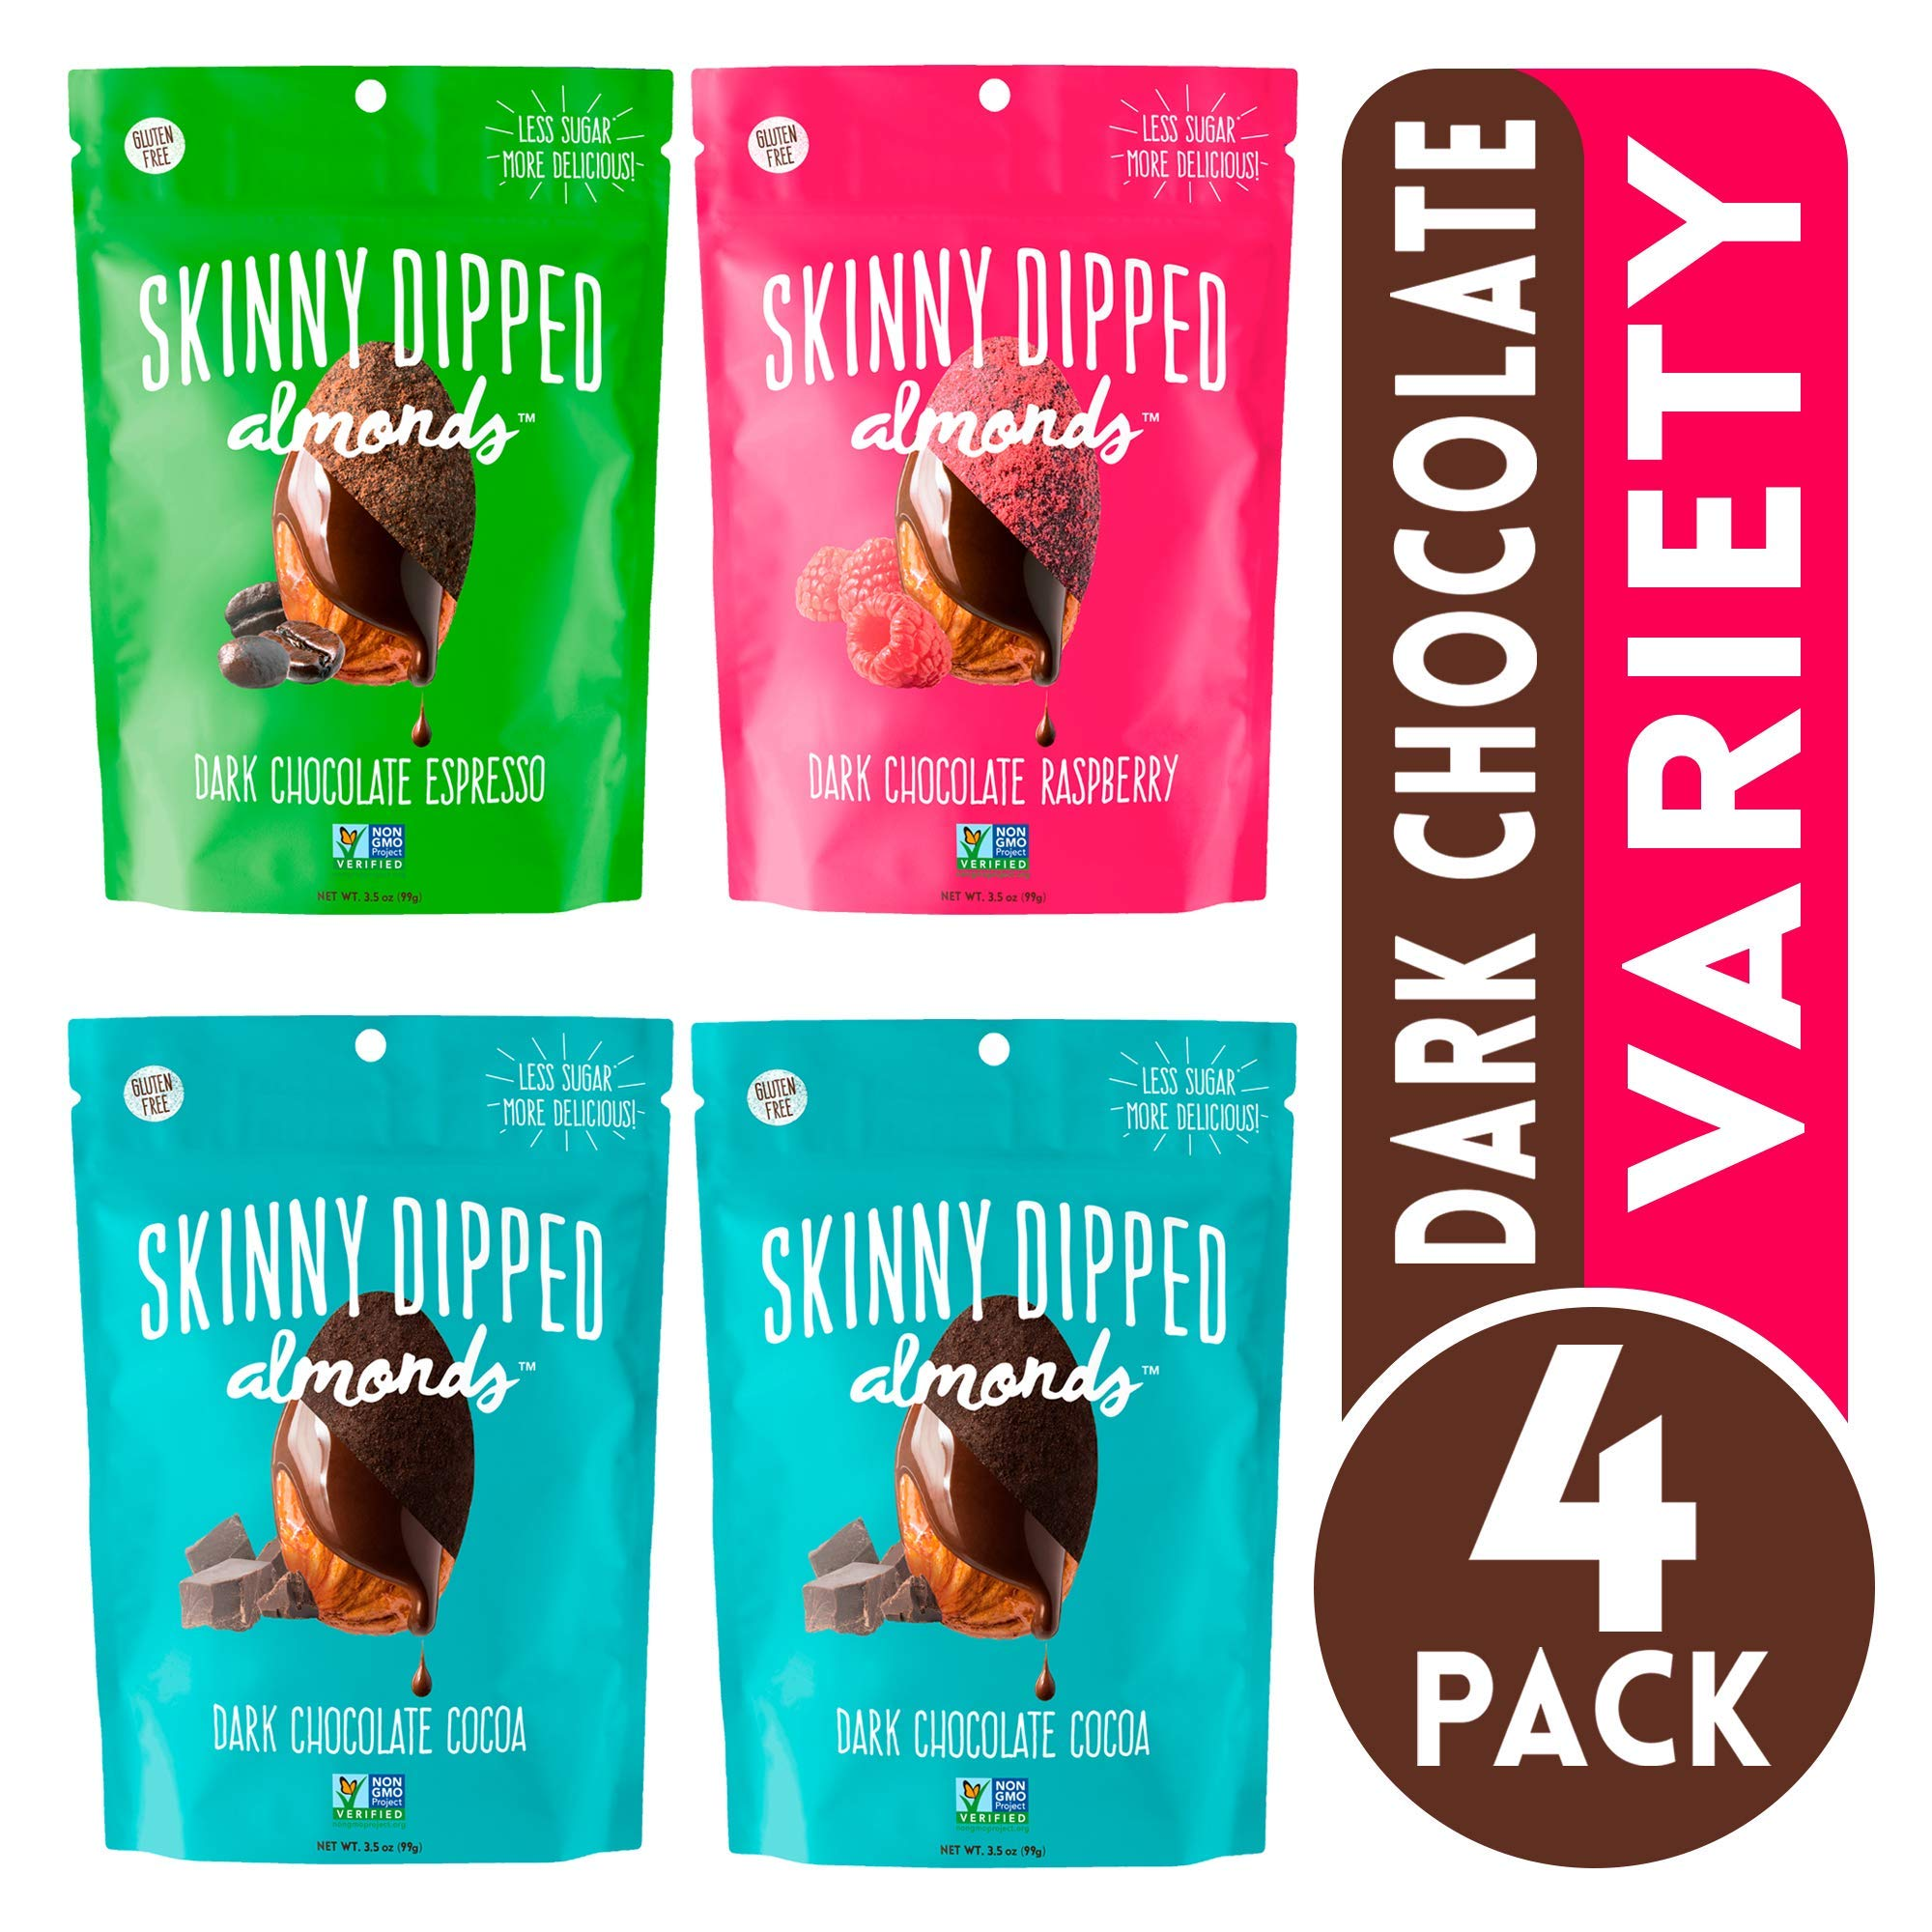 Skinny Dipped Almonds Dark Chocolate Covered Almonds, Pack of 4, Variety Pack of Cocoa, Espresso, Raspberry, Gluten Free, Low Sugar Snacks, 3.5 oz Resealable Bags